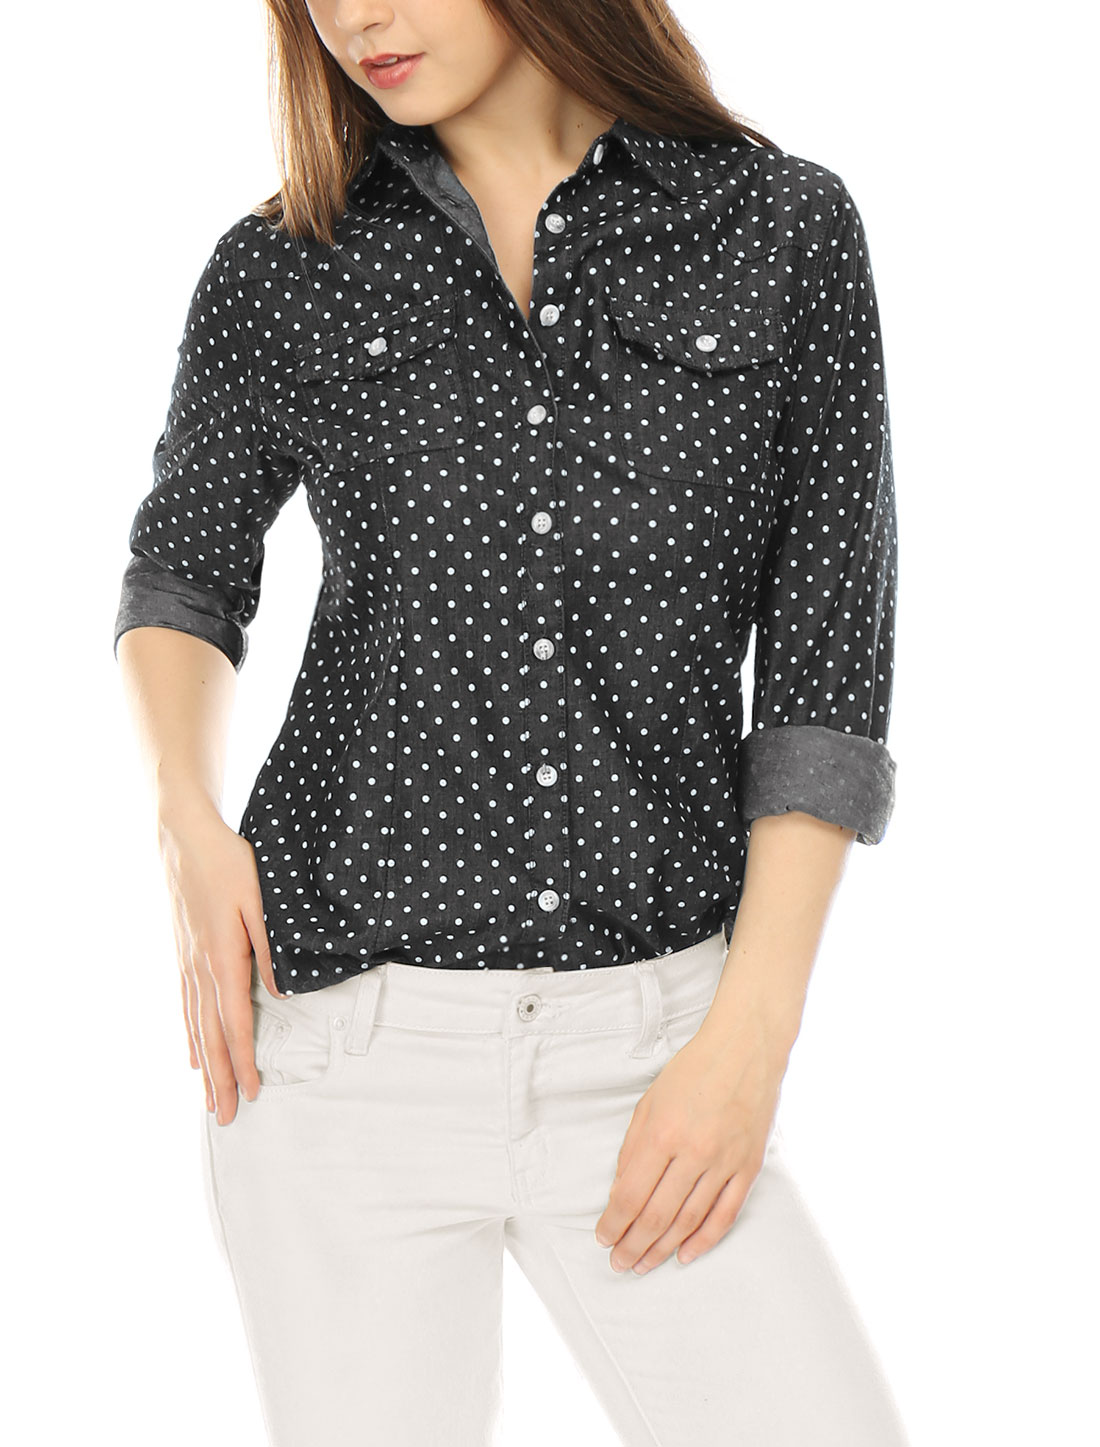 Allegra K Women Dots Point Collar Chest Pockets Button Down Shirt Black XS